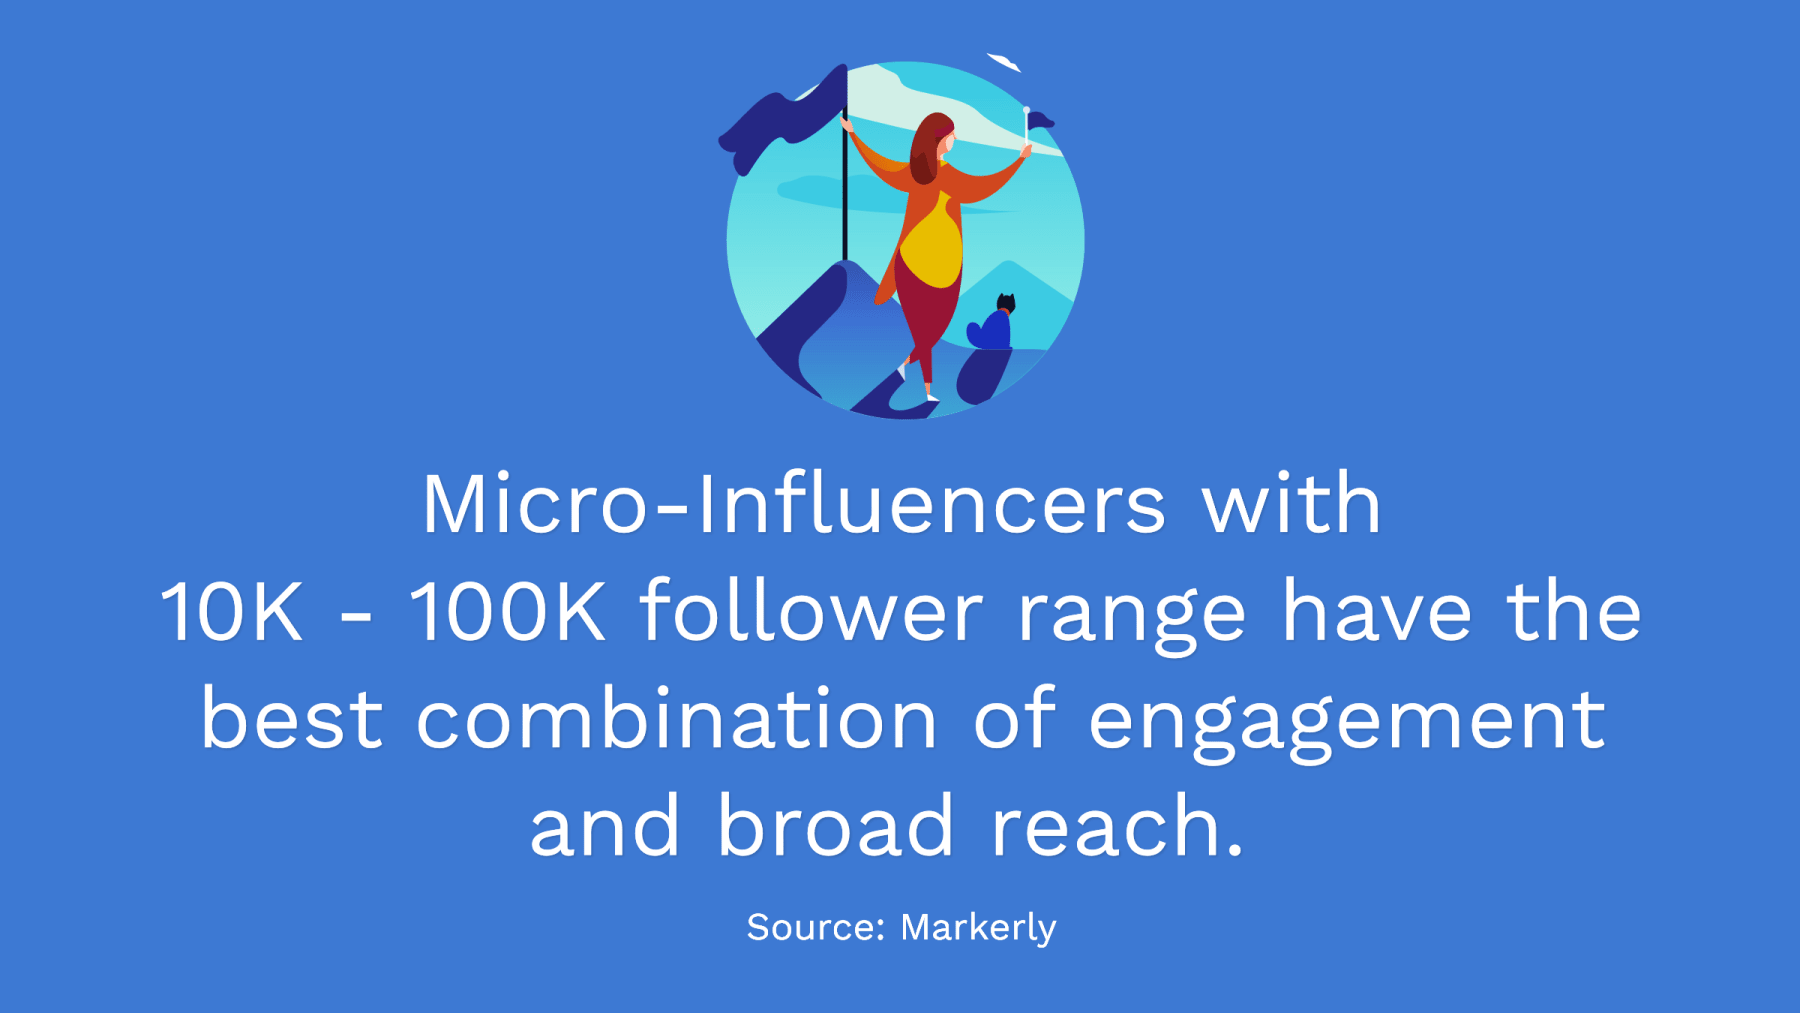 Micro-Influencers with 10K-100K followers have the best combination fo engagement and reach.